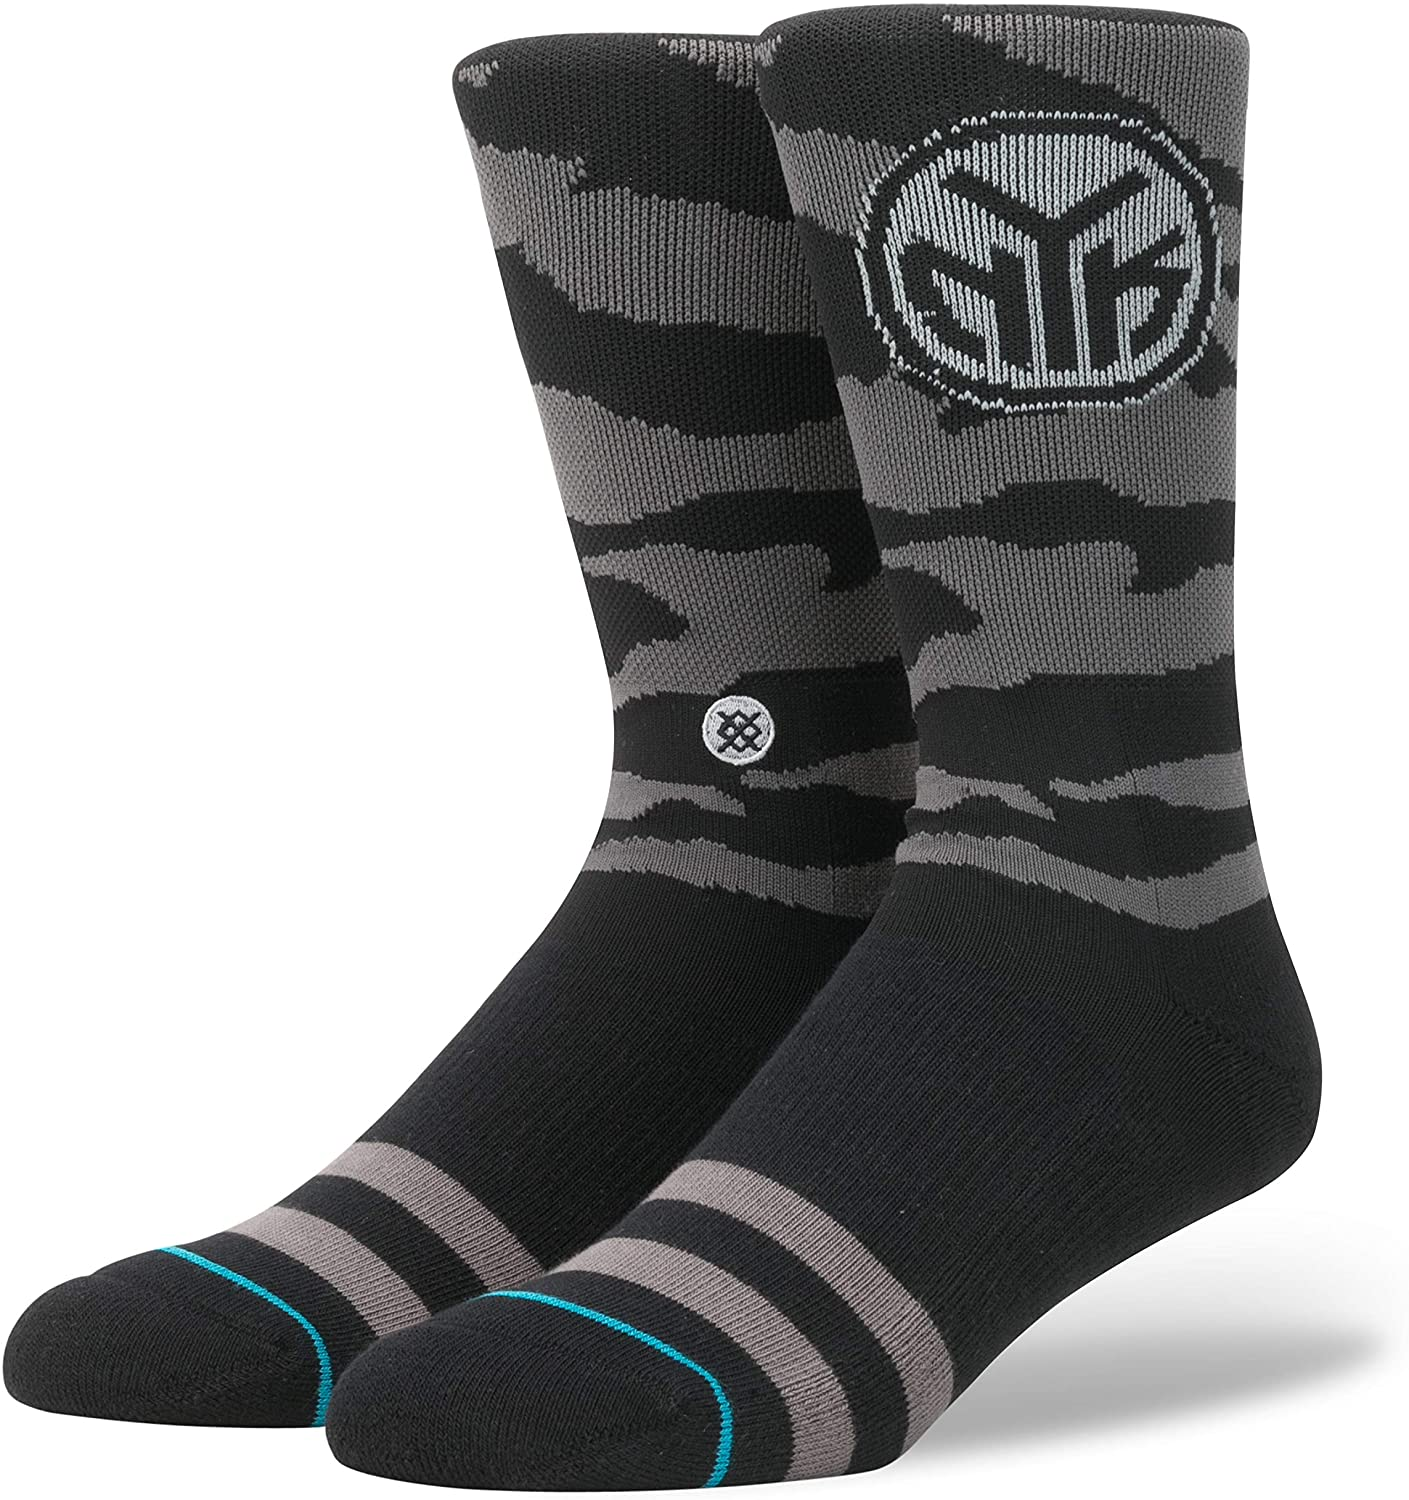 Stance Men's Nightfall Knicks Socks Black L